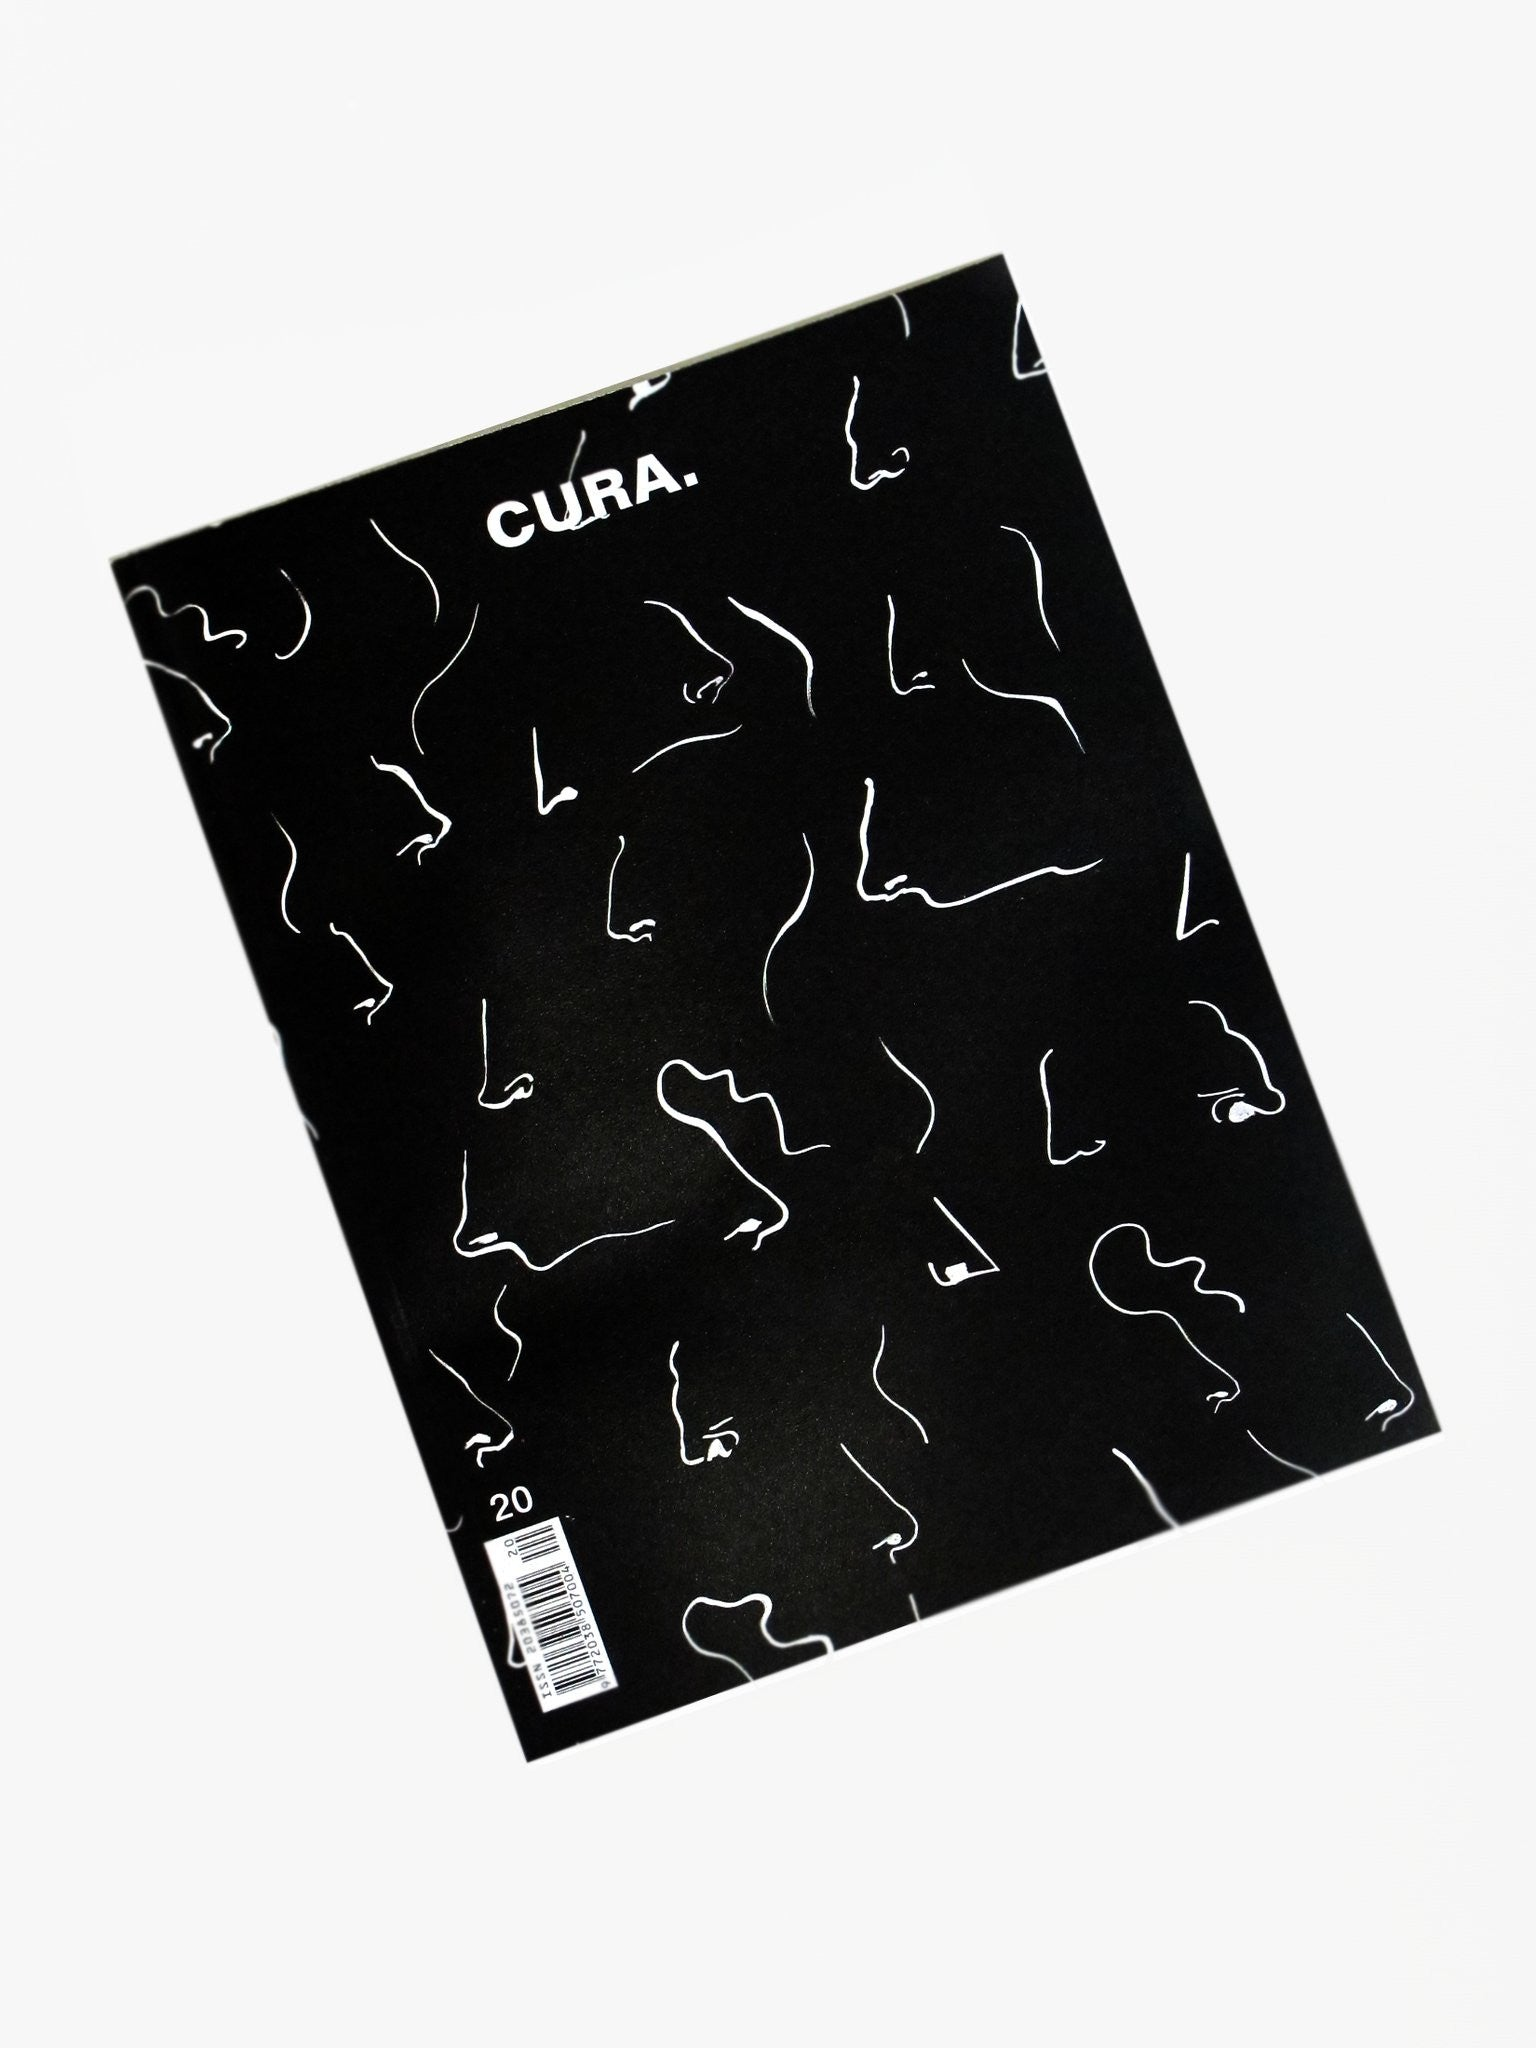 cura.magazine no.20